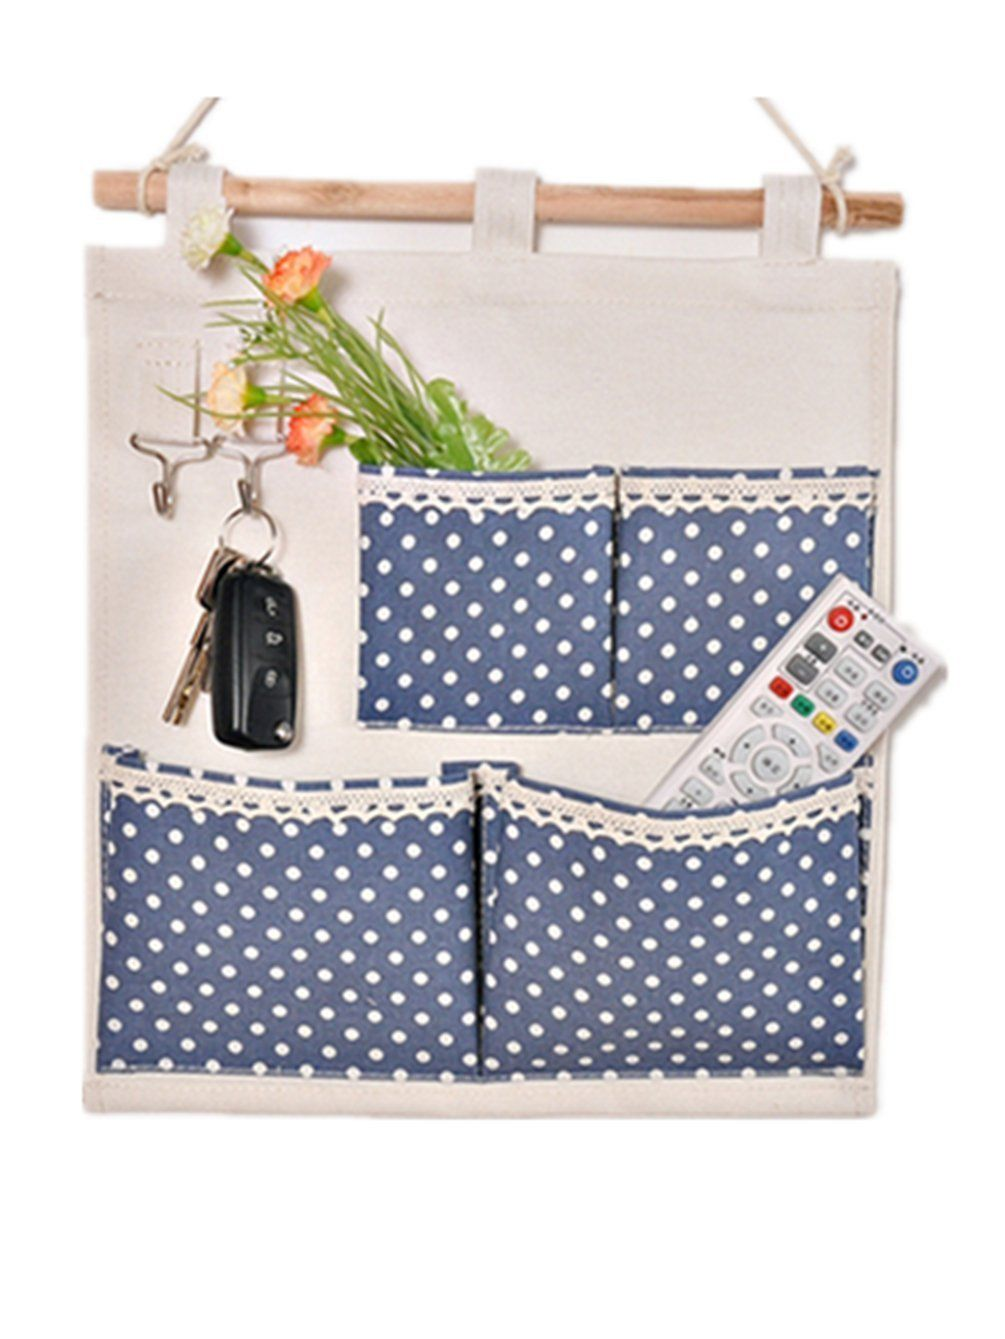 Moolecole Pastoral Style Blue Polka Dots Printed Cotton/Linen Fabric Wall  Hanging Organizer 4